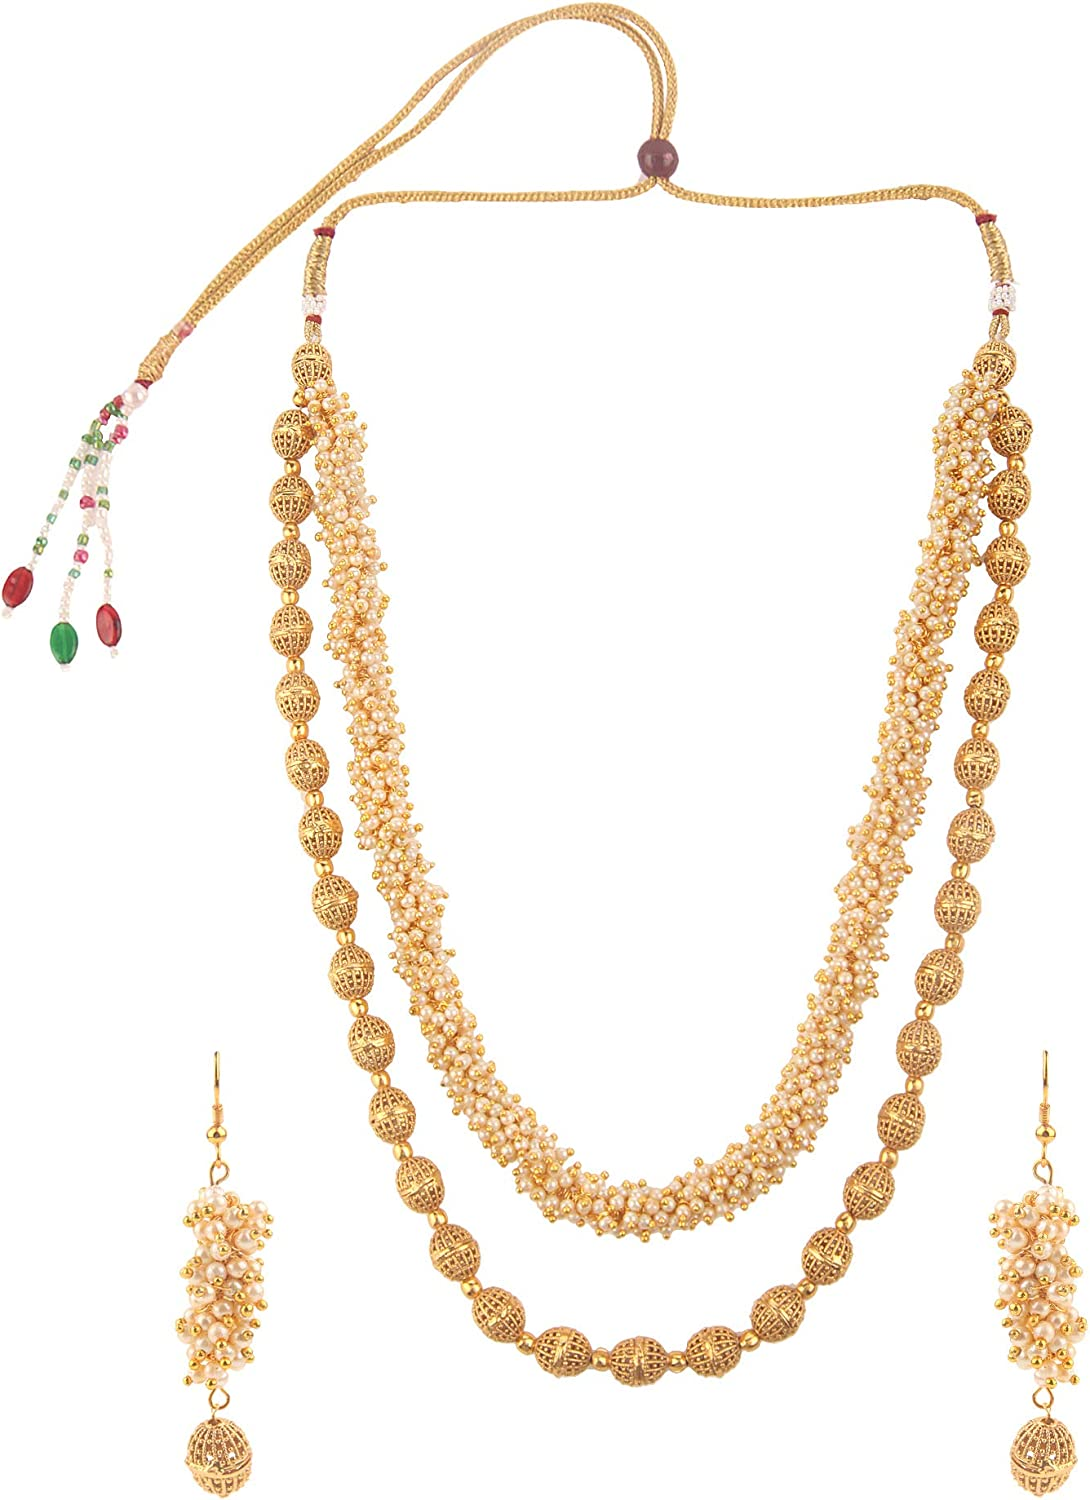 Efulgenz Indian Bollywood 14 K Gold Plated Faux Pearl Beads Bridal Strand Statement Necklace Earrings Wedding Jewelry Set